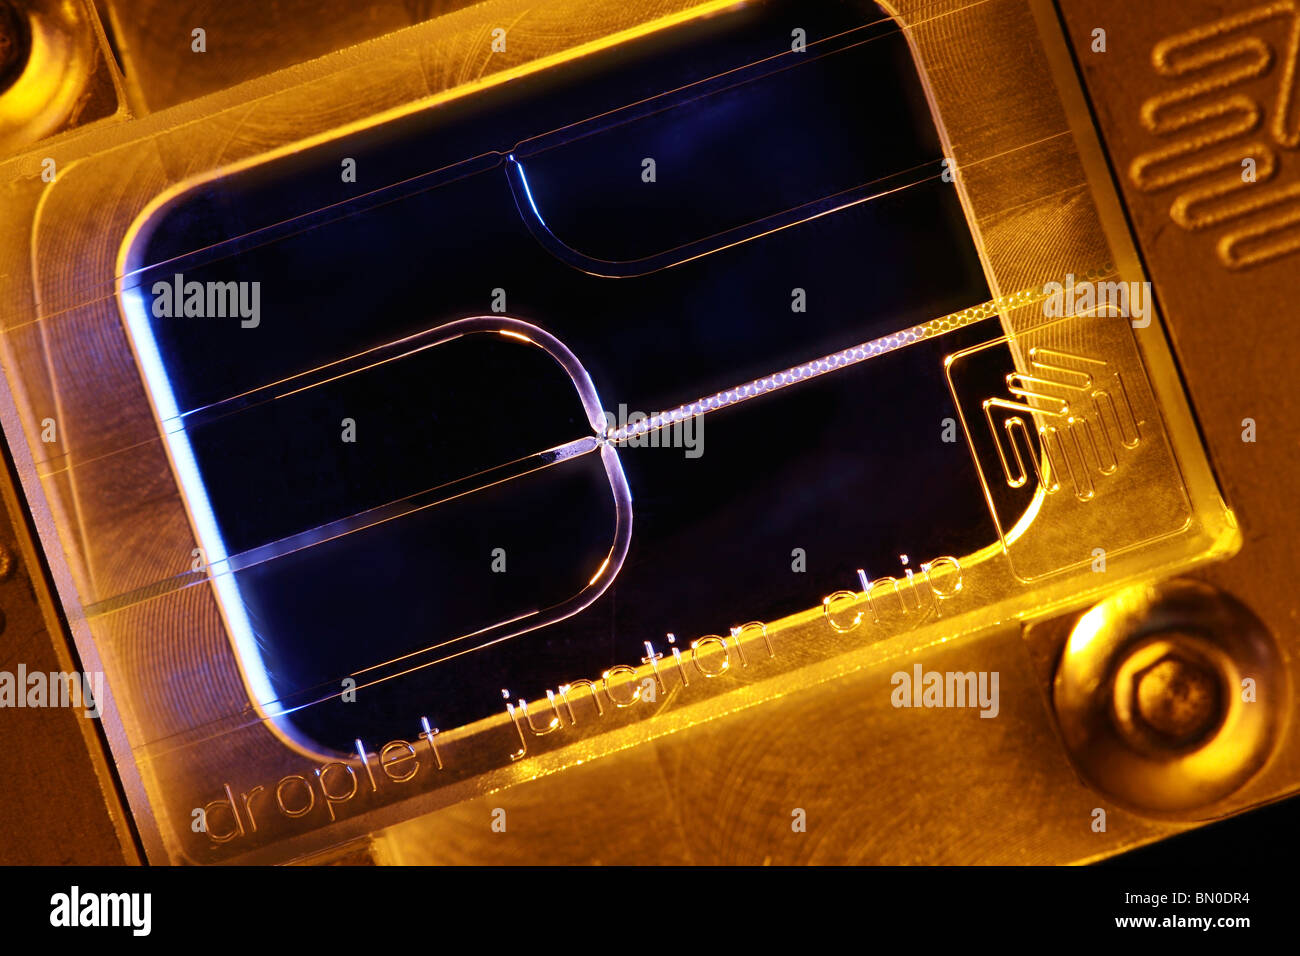 Microfluidic etched glass droplet junction chip for mono dispersed droplet formation in micro and nano technology - Stock Image